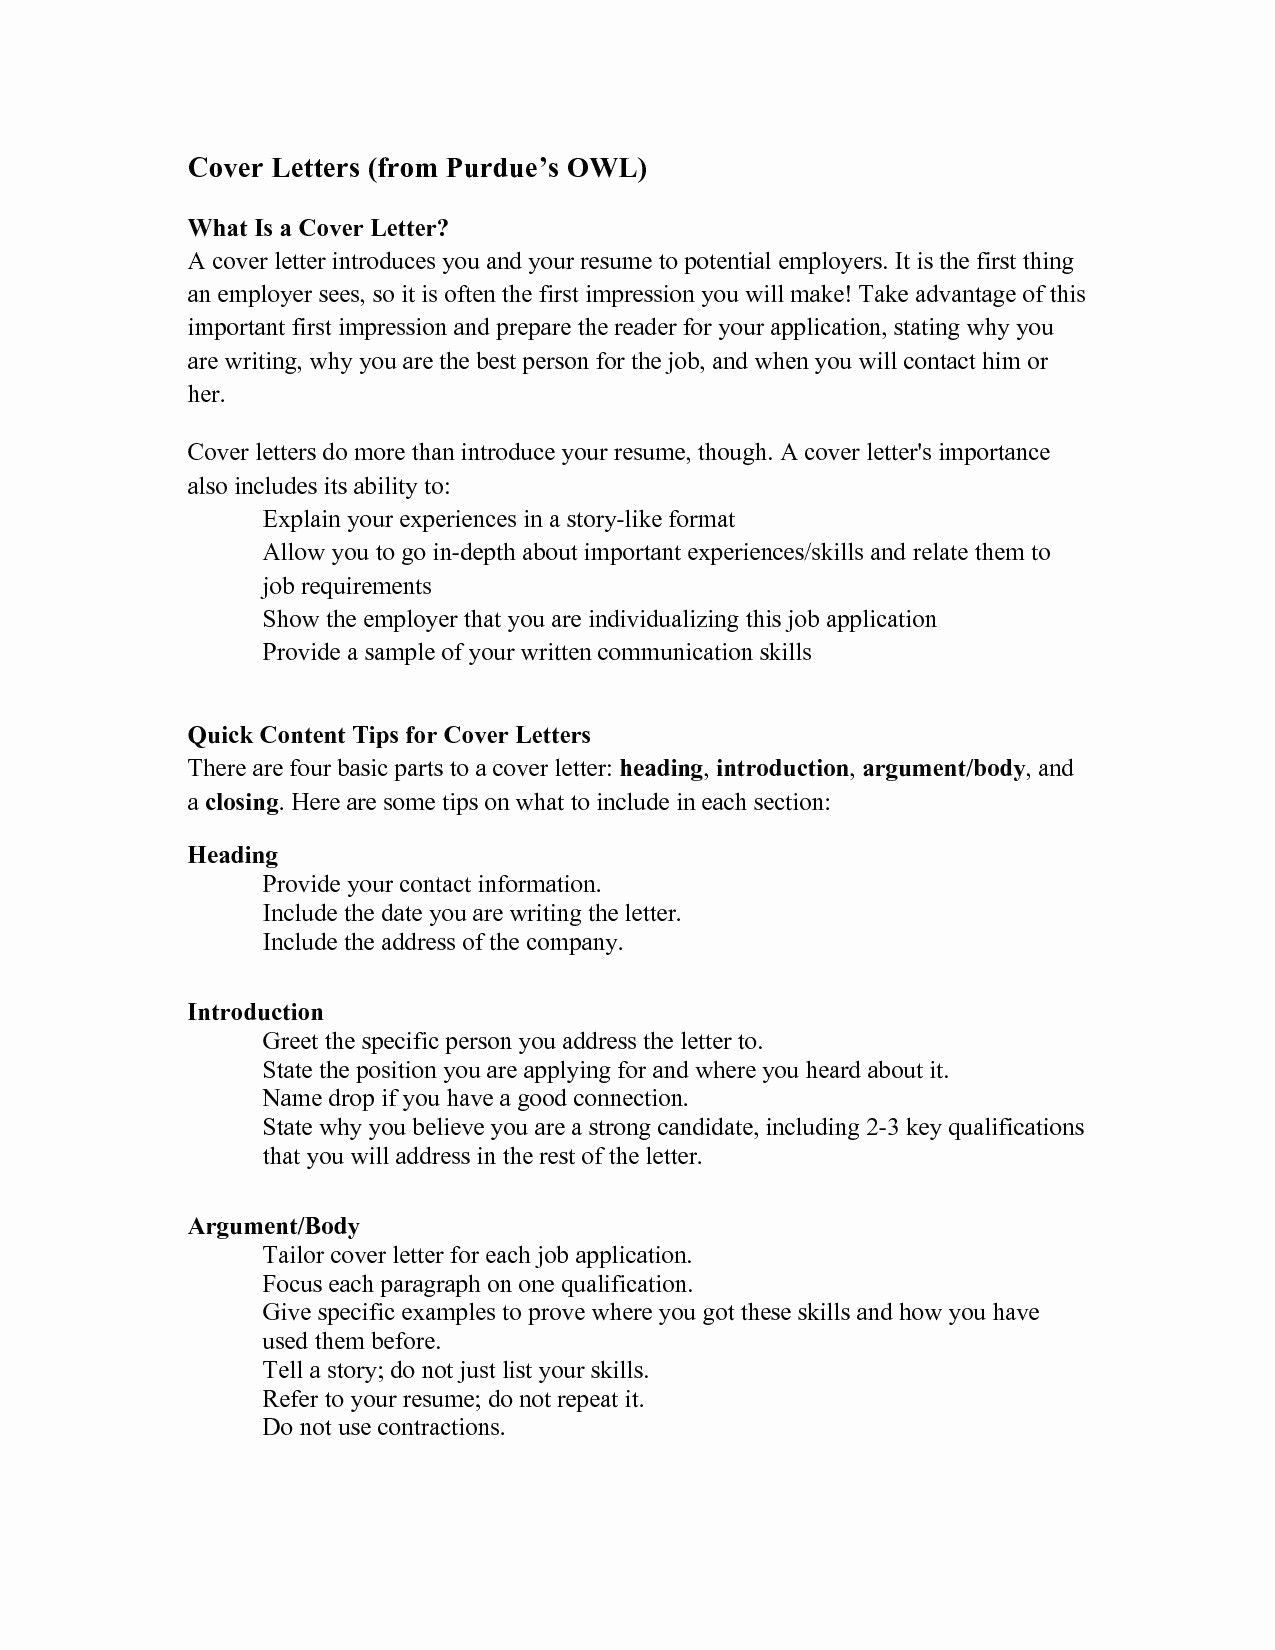 Cover Letter Template Google Drive Elegant Does the Cover